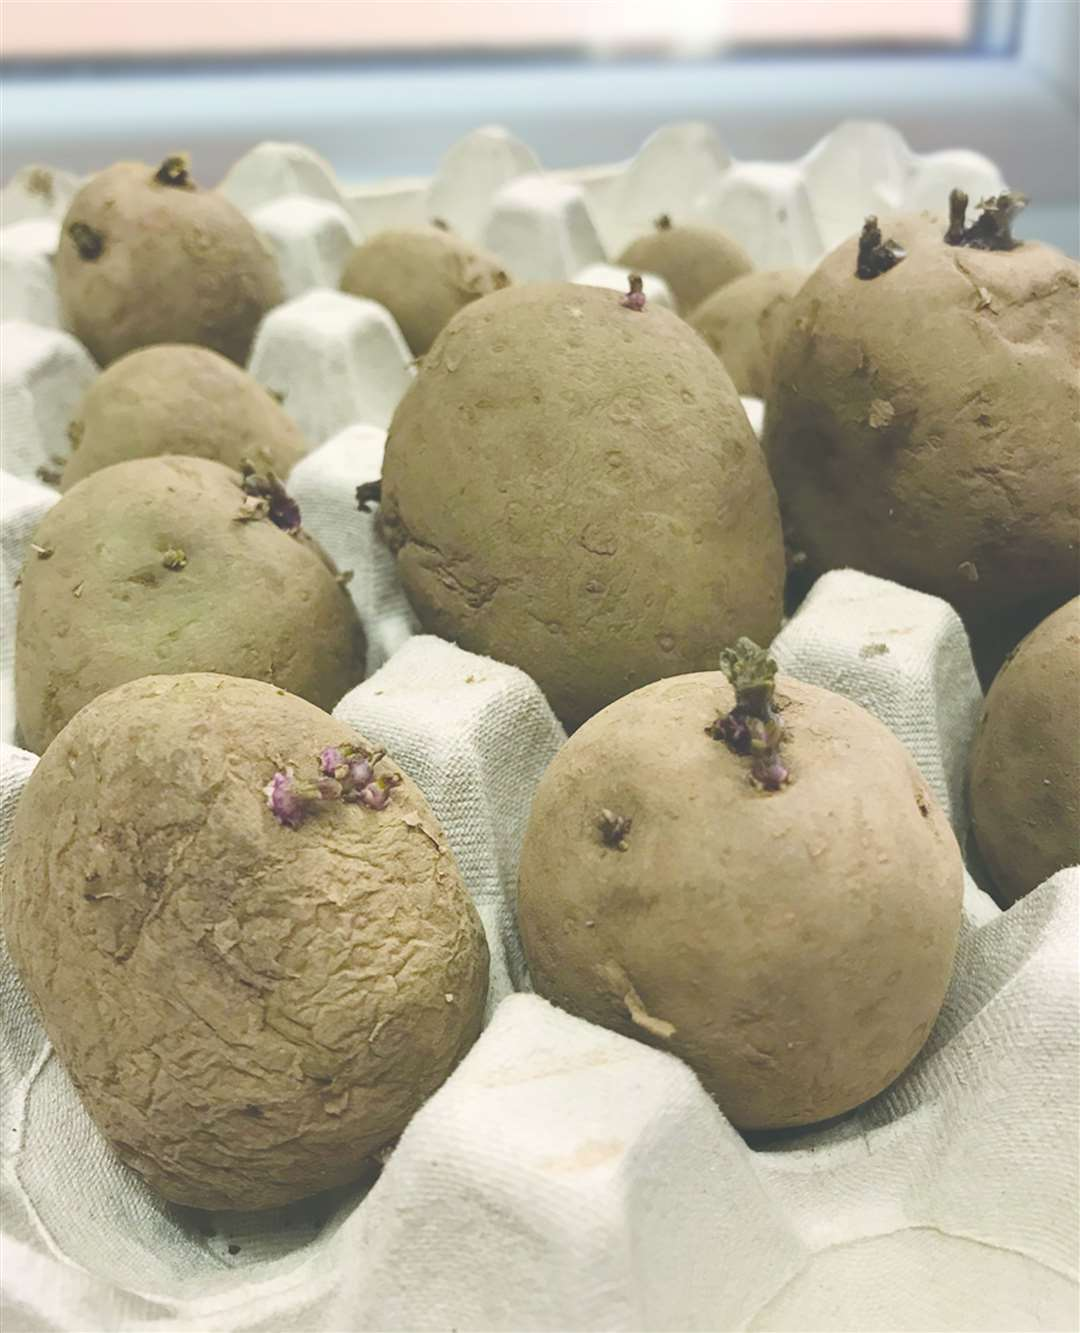 Seed potatoes are chitting (27284859)